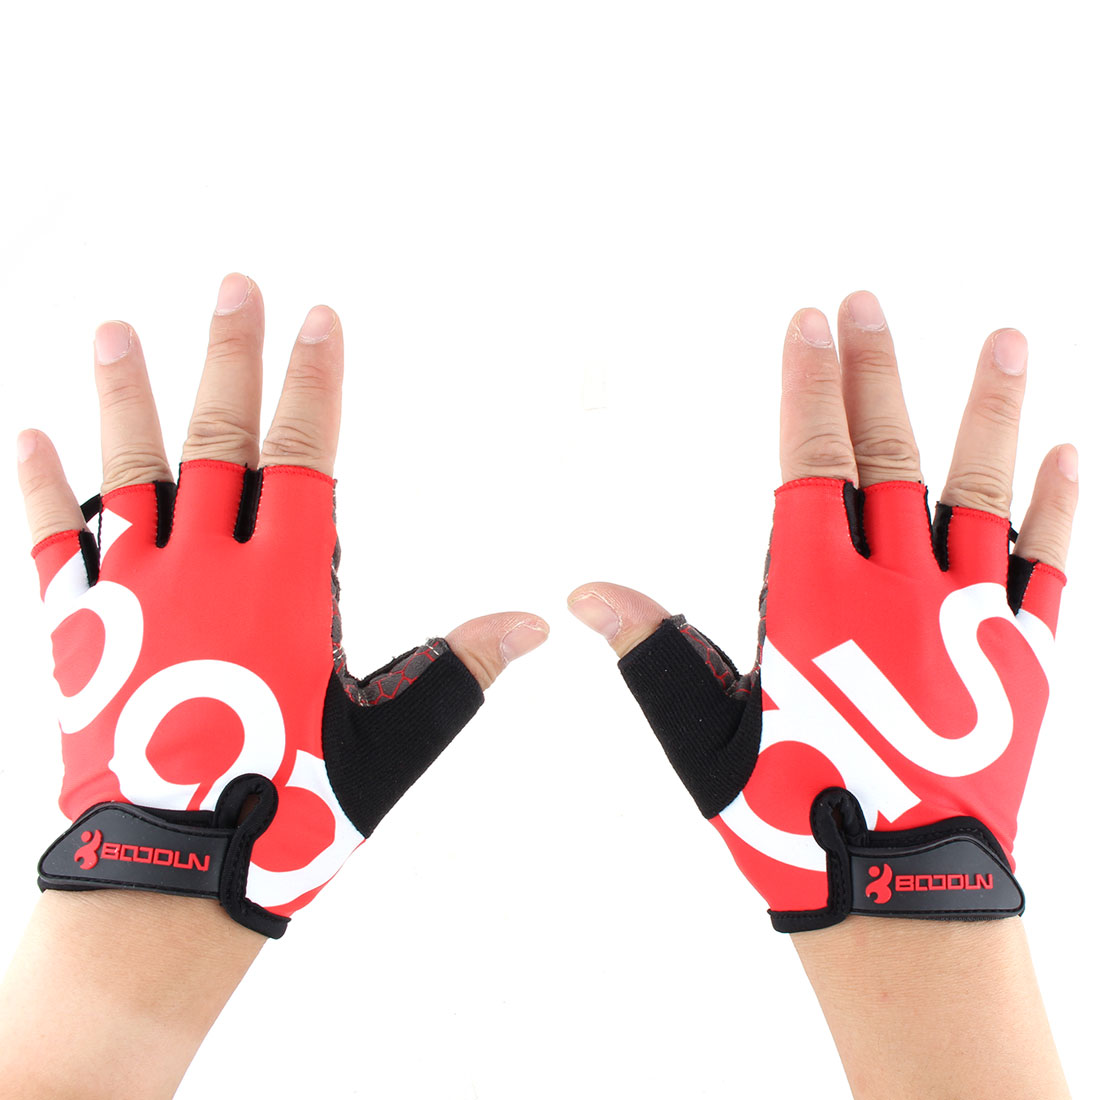 BOODUN Authorized Unisex Outdoor Sports Cycling Biking Exercise Adjustable Fitness Half Finger Gloves Red XL Size Pair